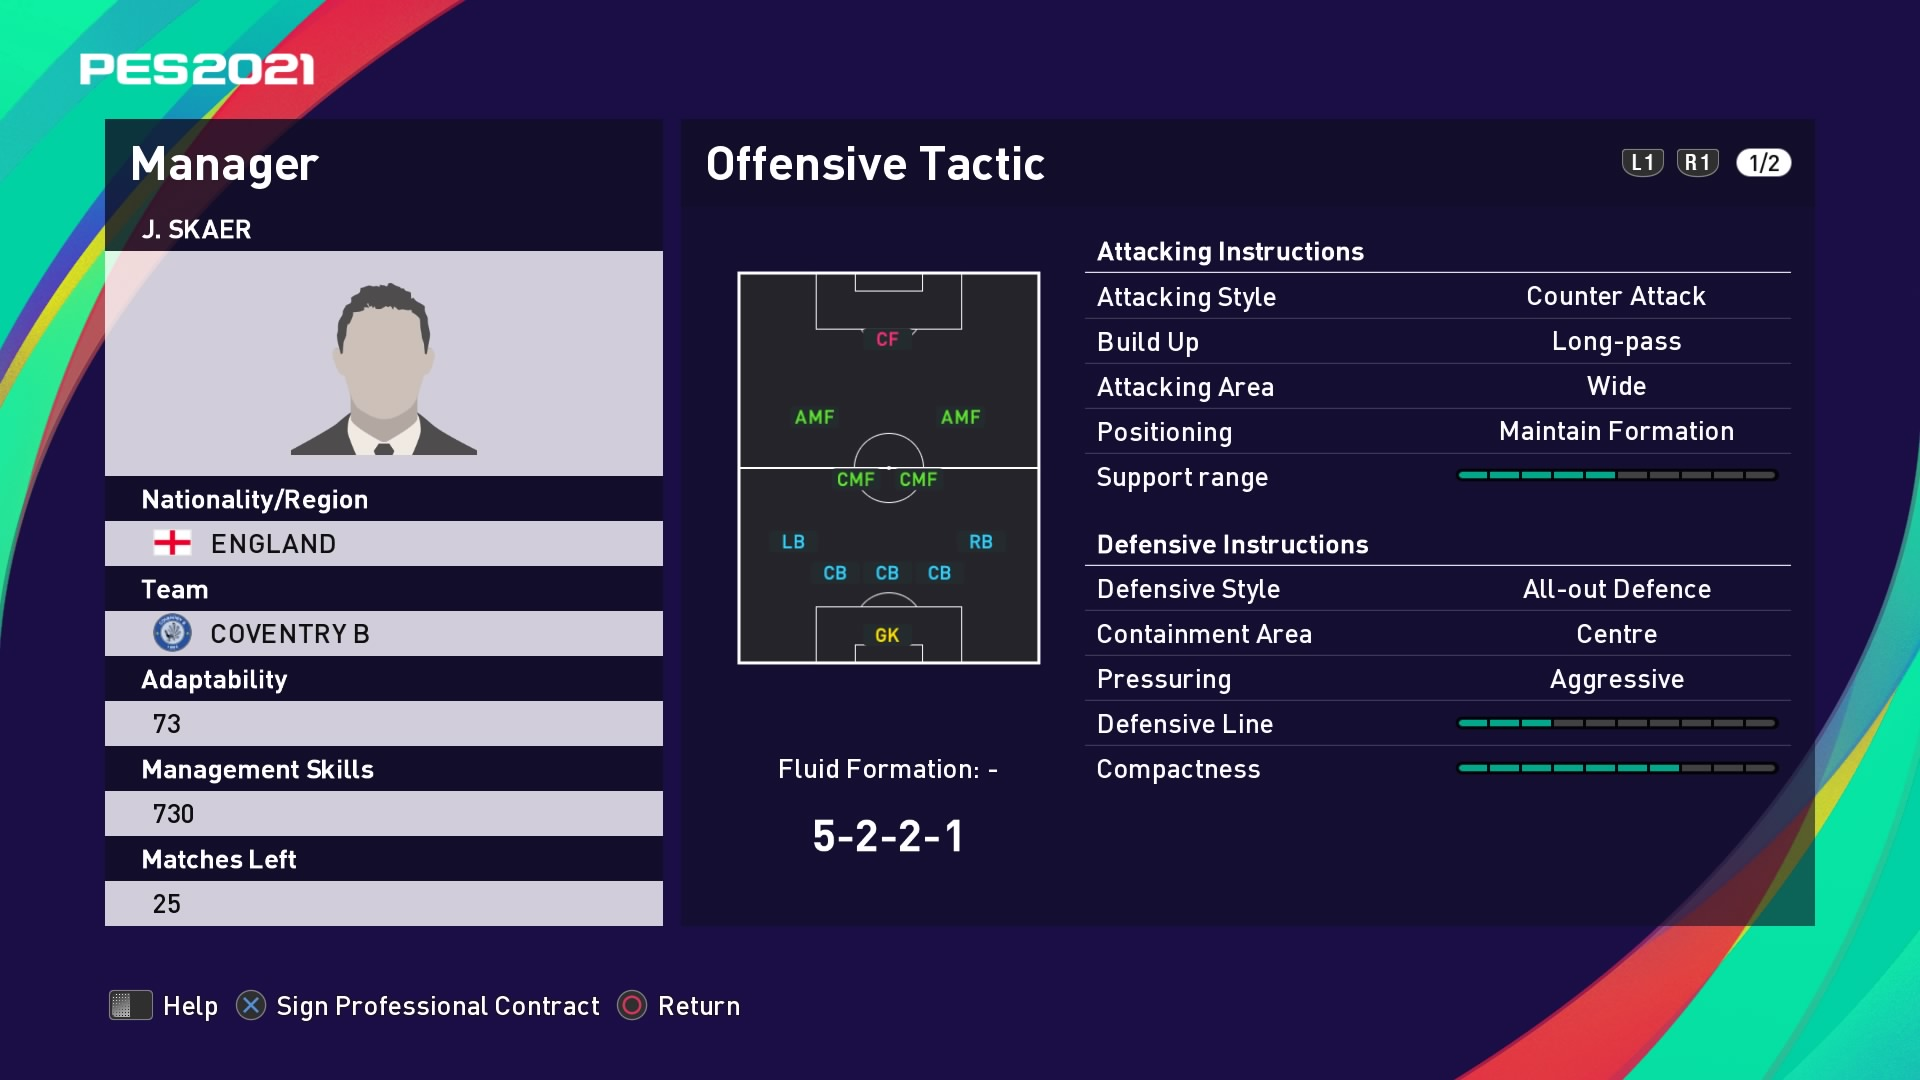 J. Skaer (Mark Robins) Offensive Tactic in PES 2021 myClub